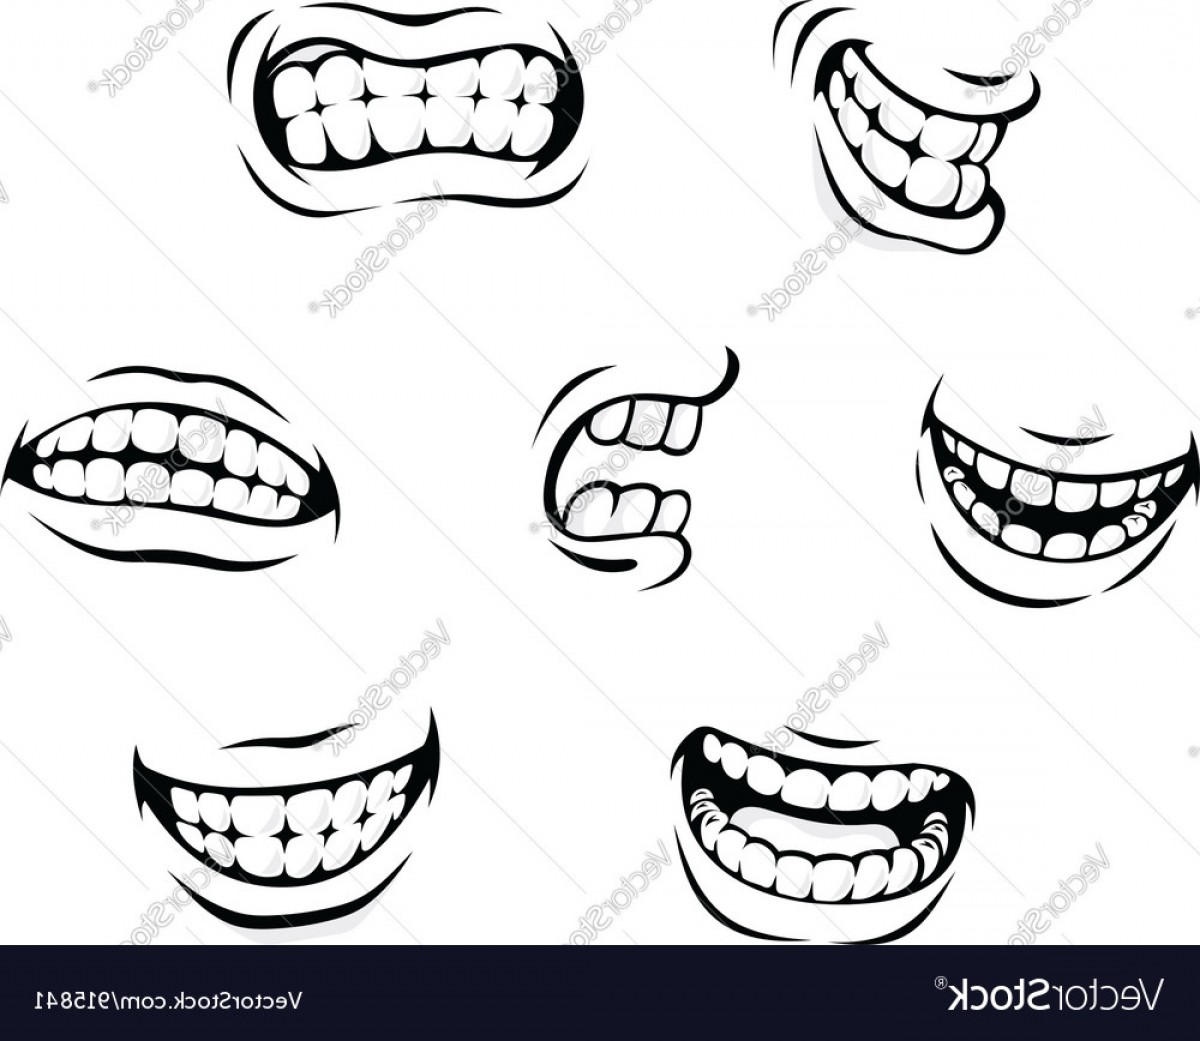 Angry teeth clipart svg freeuse download Smiling And Angry Cartoon Teeth Vector   SOIDERGI svg freeuse download